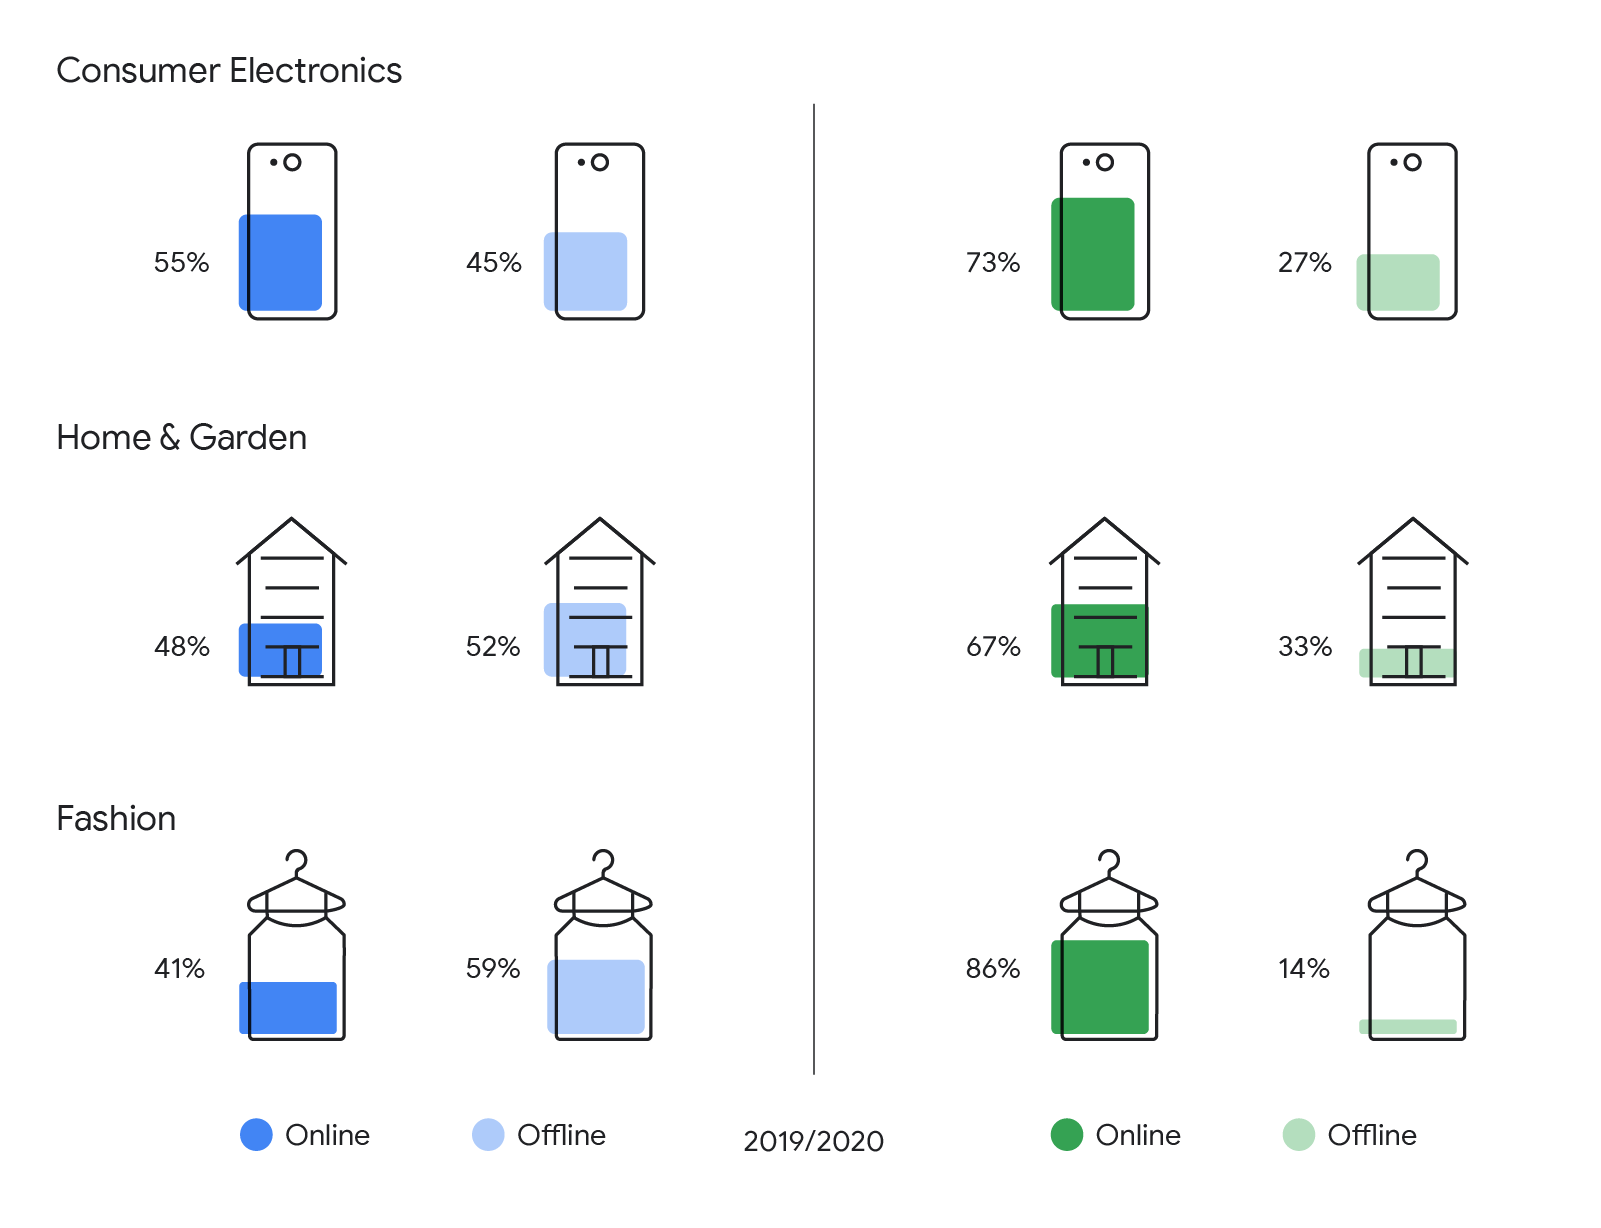 This graph shows 12 bar charts displaying the growth/decline of online vs offline purchases from 2019 to 2020 across Consumer Electronics, Home & Garden, and Fashion.